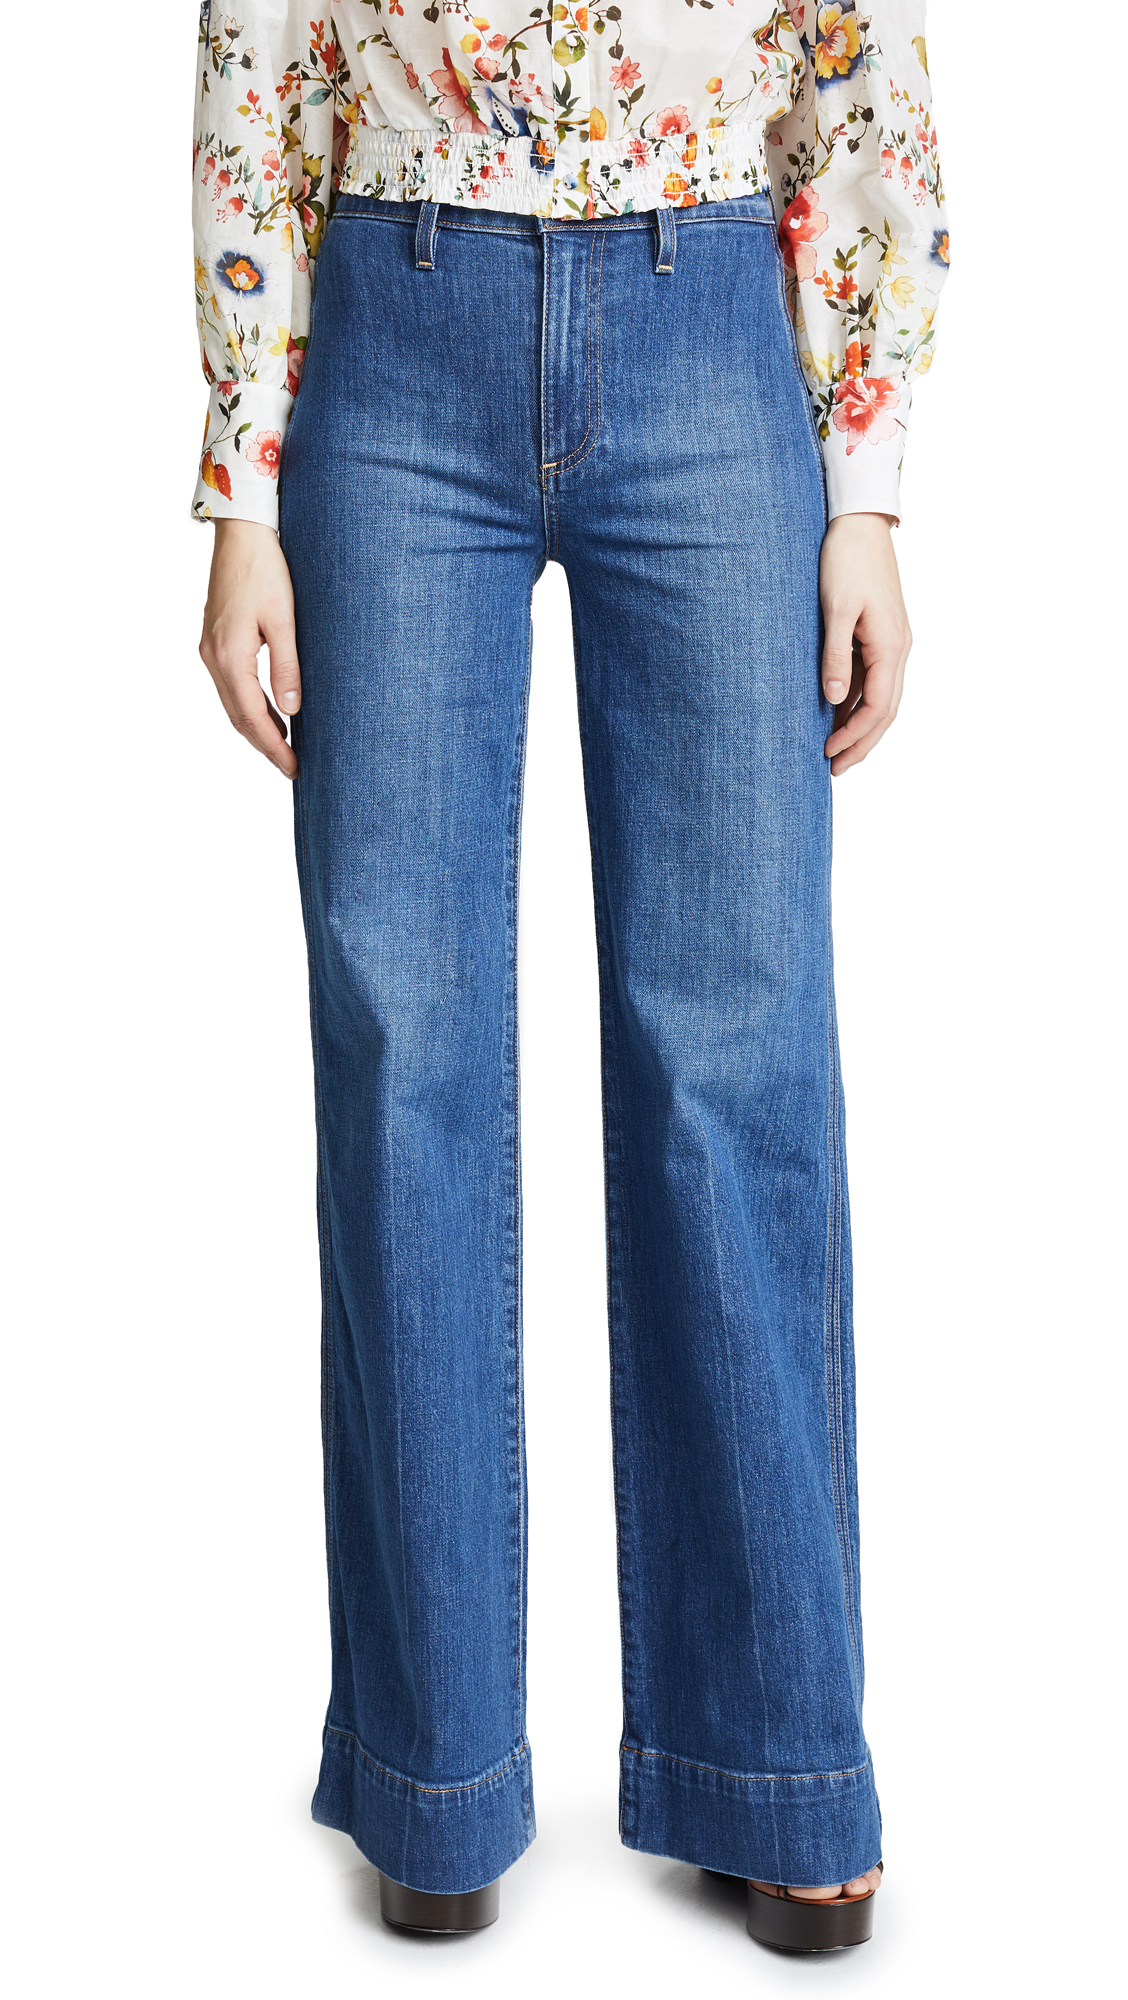 Gorgeous High Rise Jeans